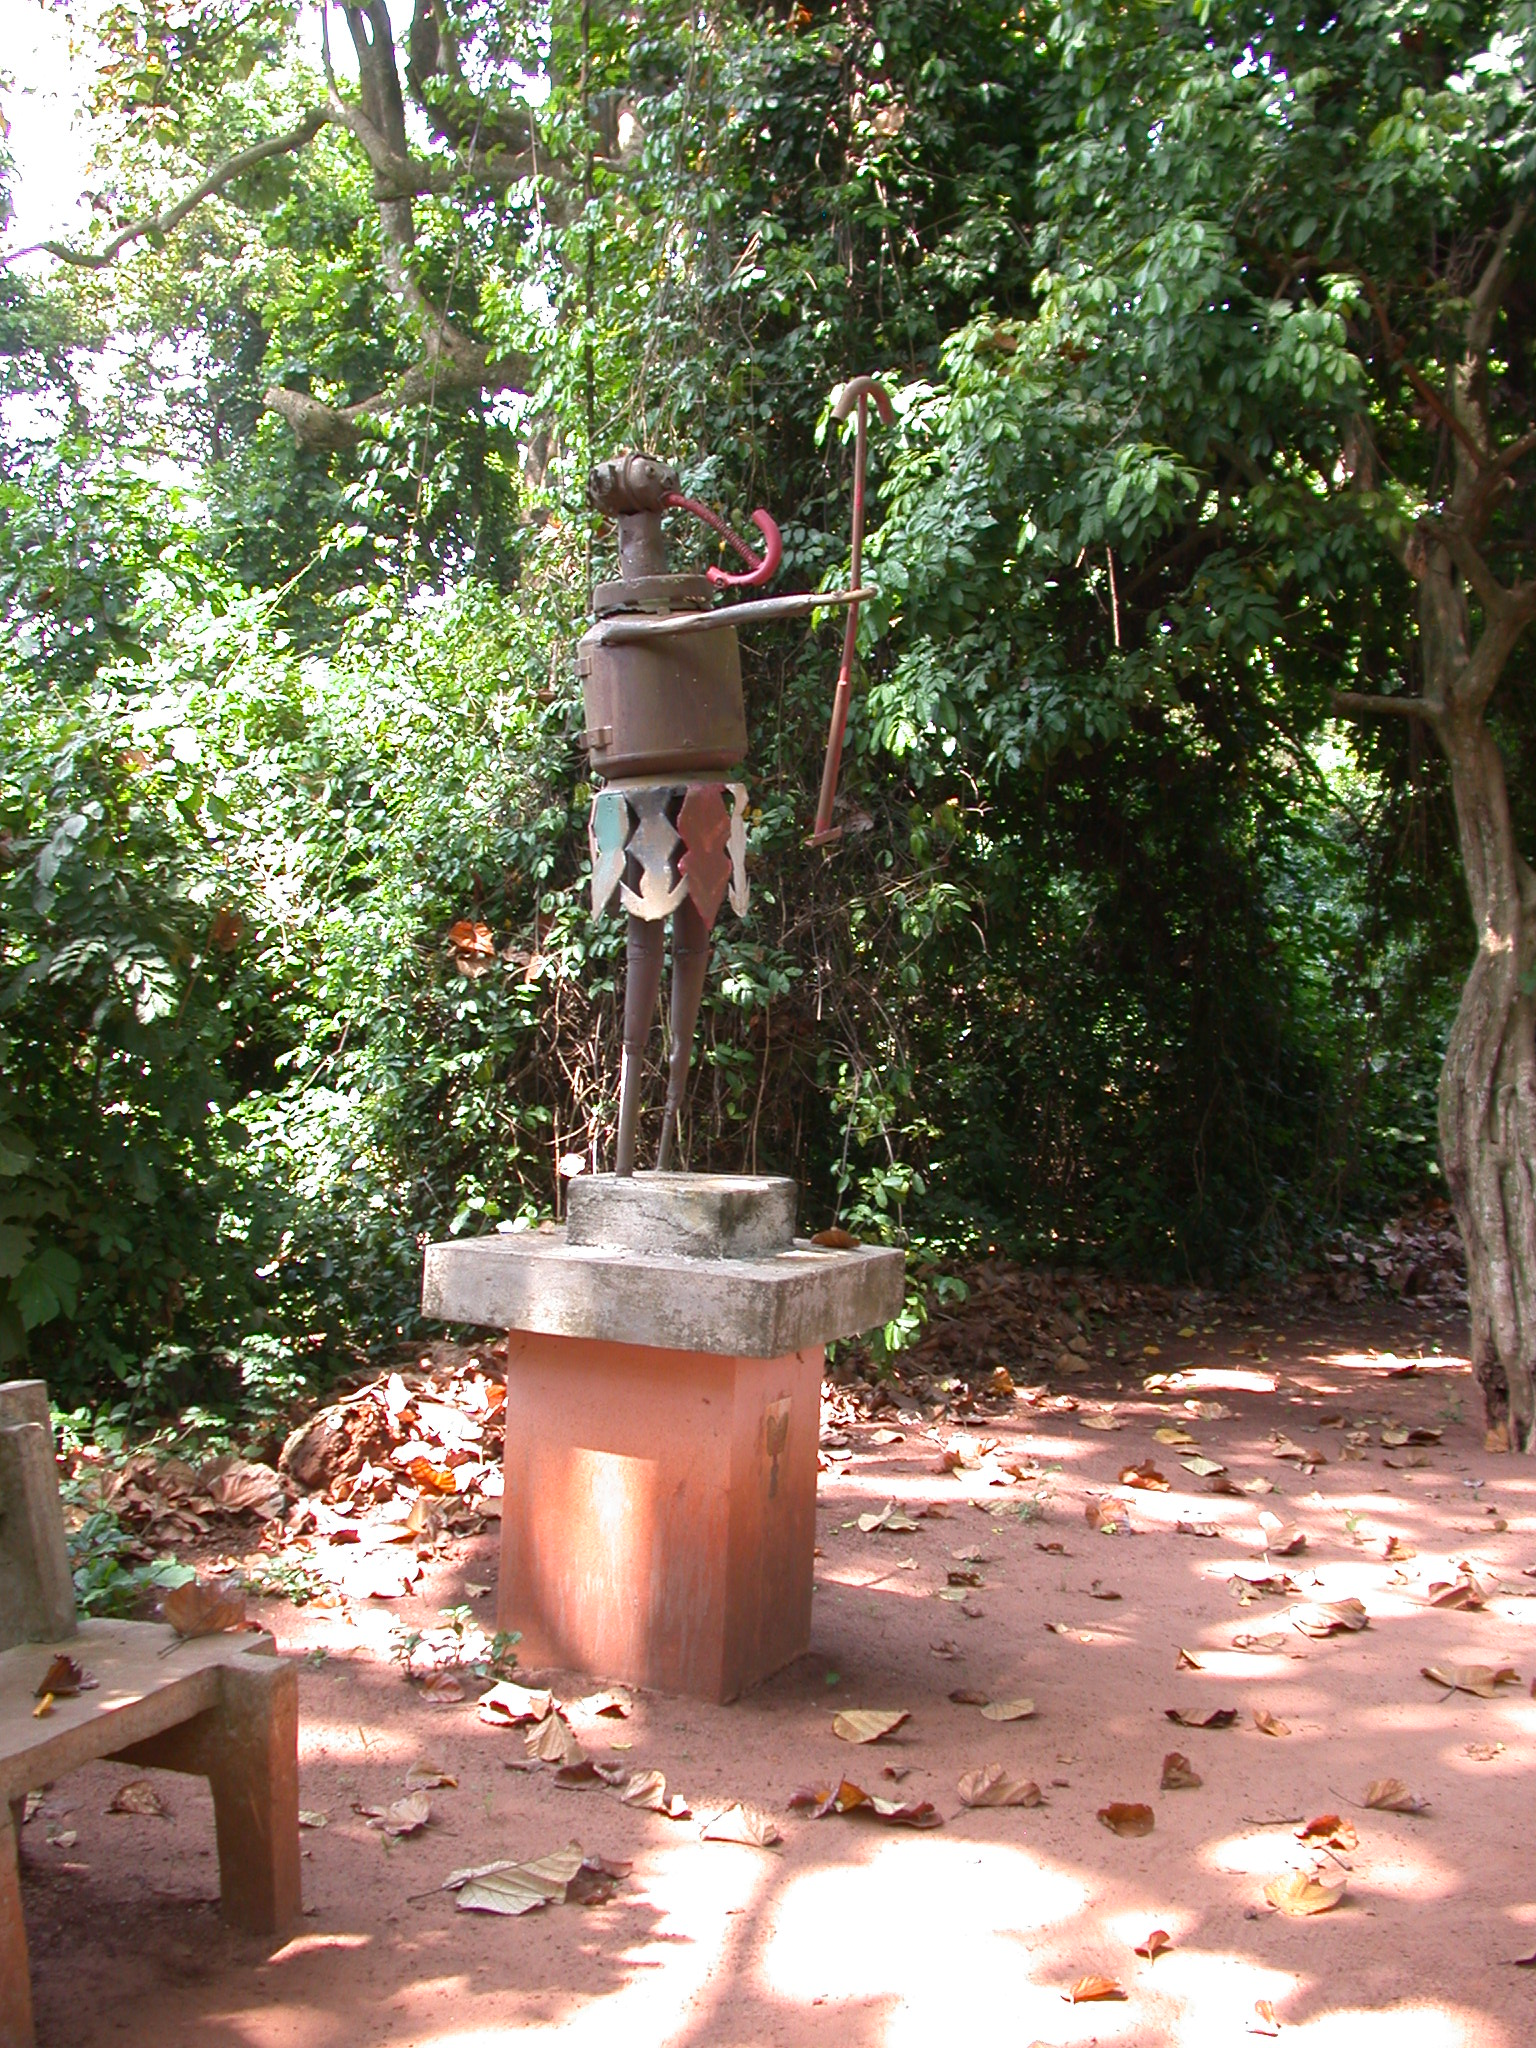 Xeviosso Spirit of Thunder and Lightning Sculpture, Kpasse Sacred Forest, Ouidah, Benin